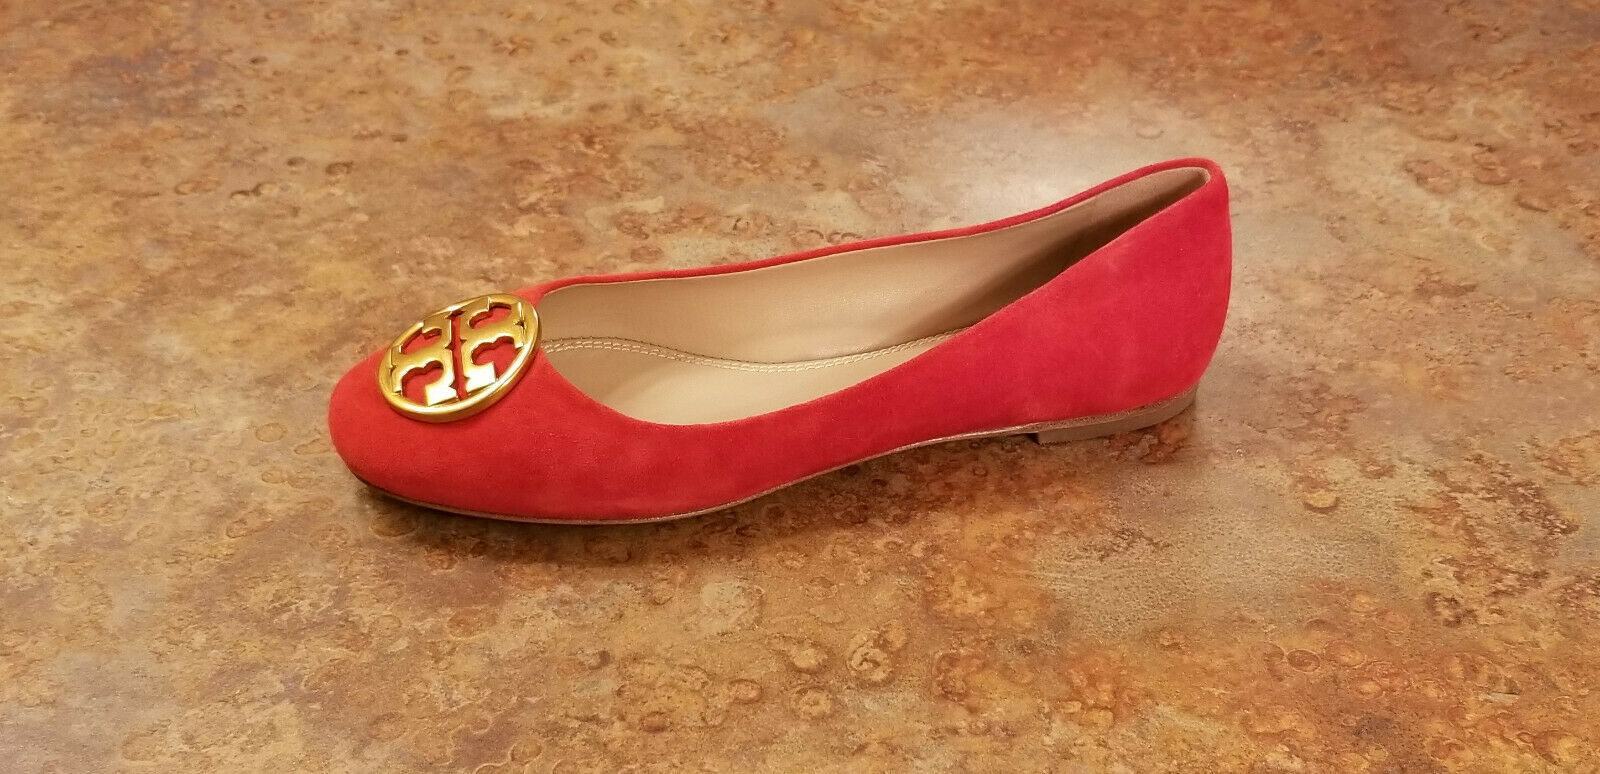 New  Tory Burch 'Chelsea' Ballet Flat Red gold Suede shoes Womens 5 M MSRP  248